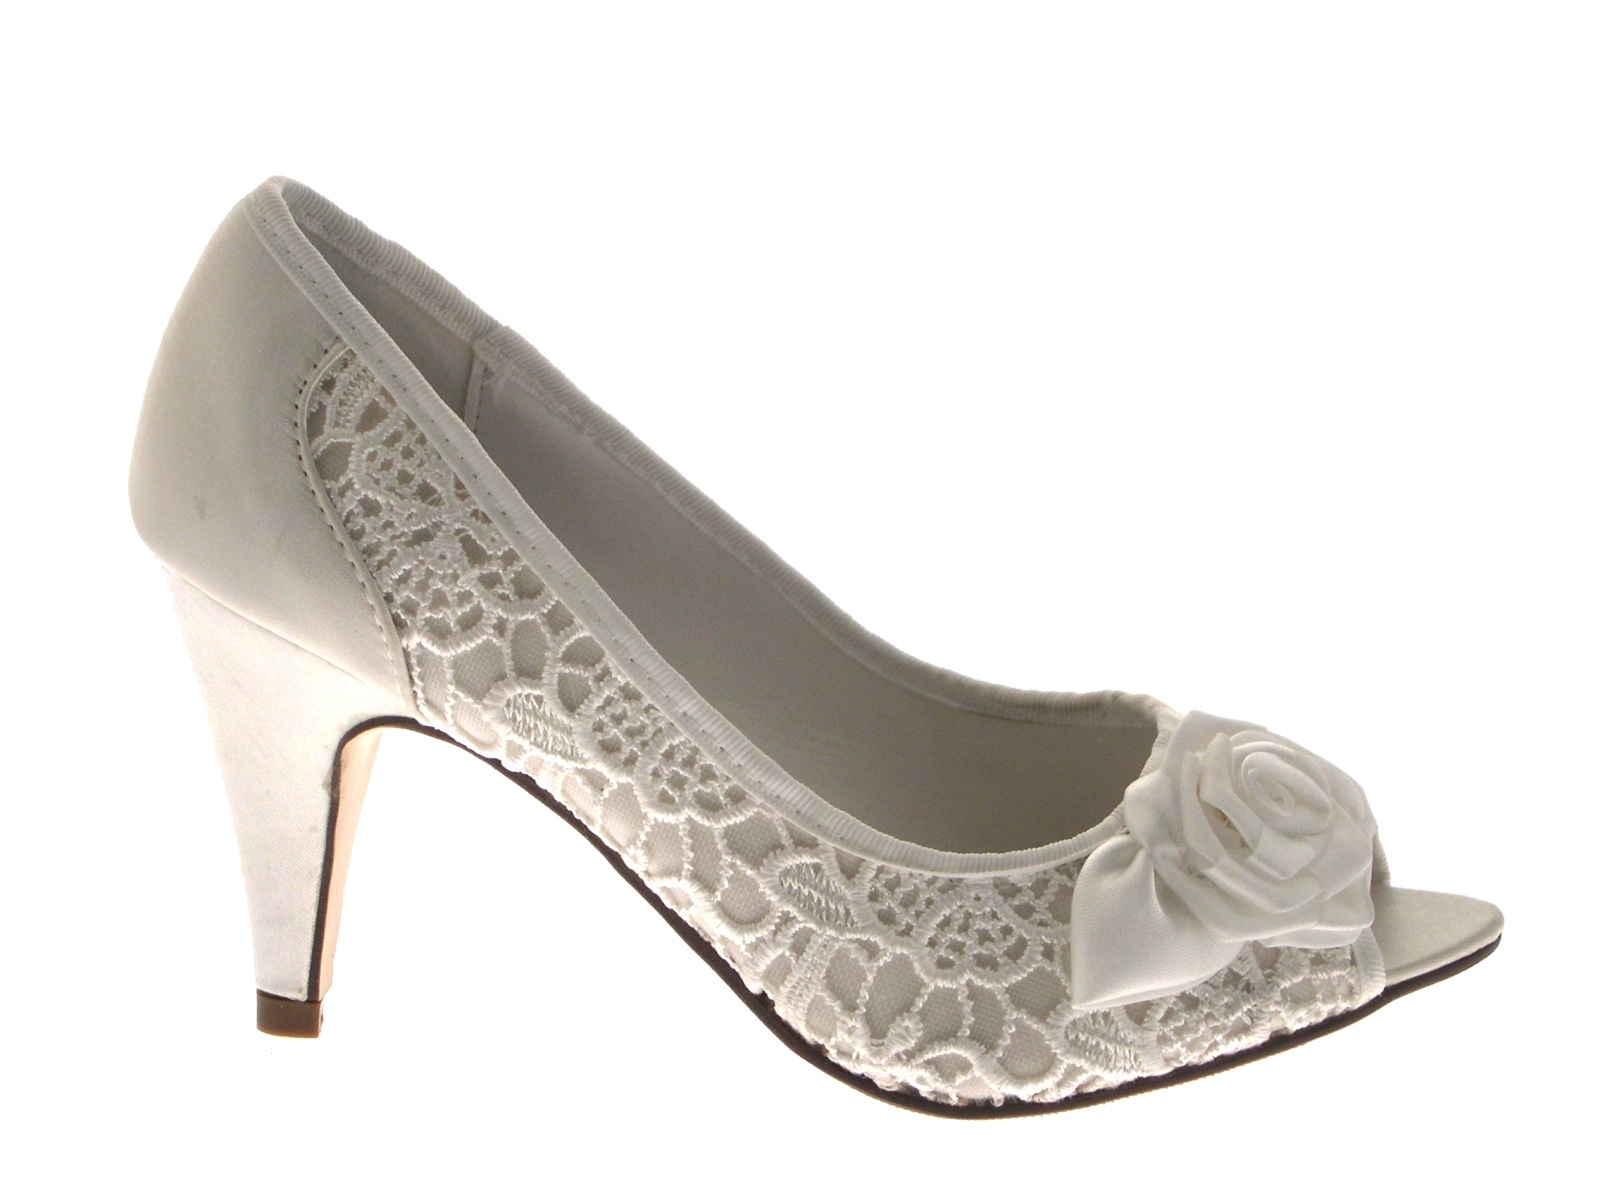 Womens High Heels Satin Lace Flower Bridal Wedding Peeptoe Shoes Sandal Size 3-8